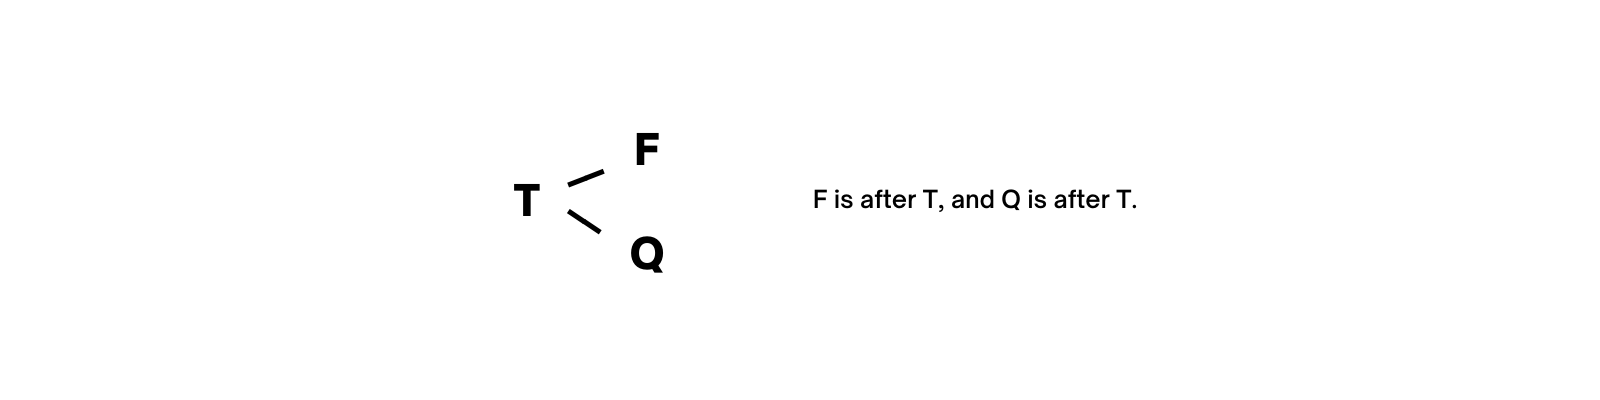 F is after T, and Q is after T.